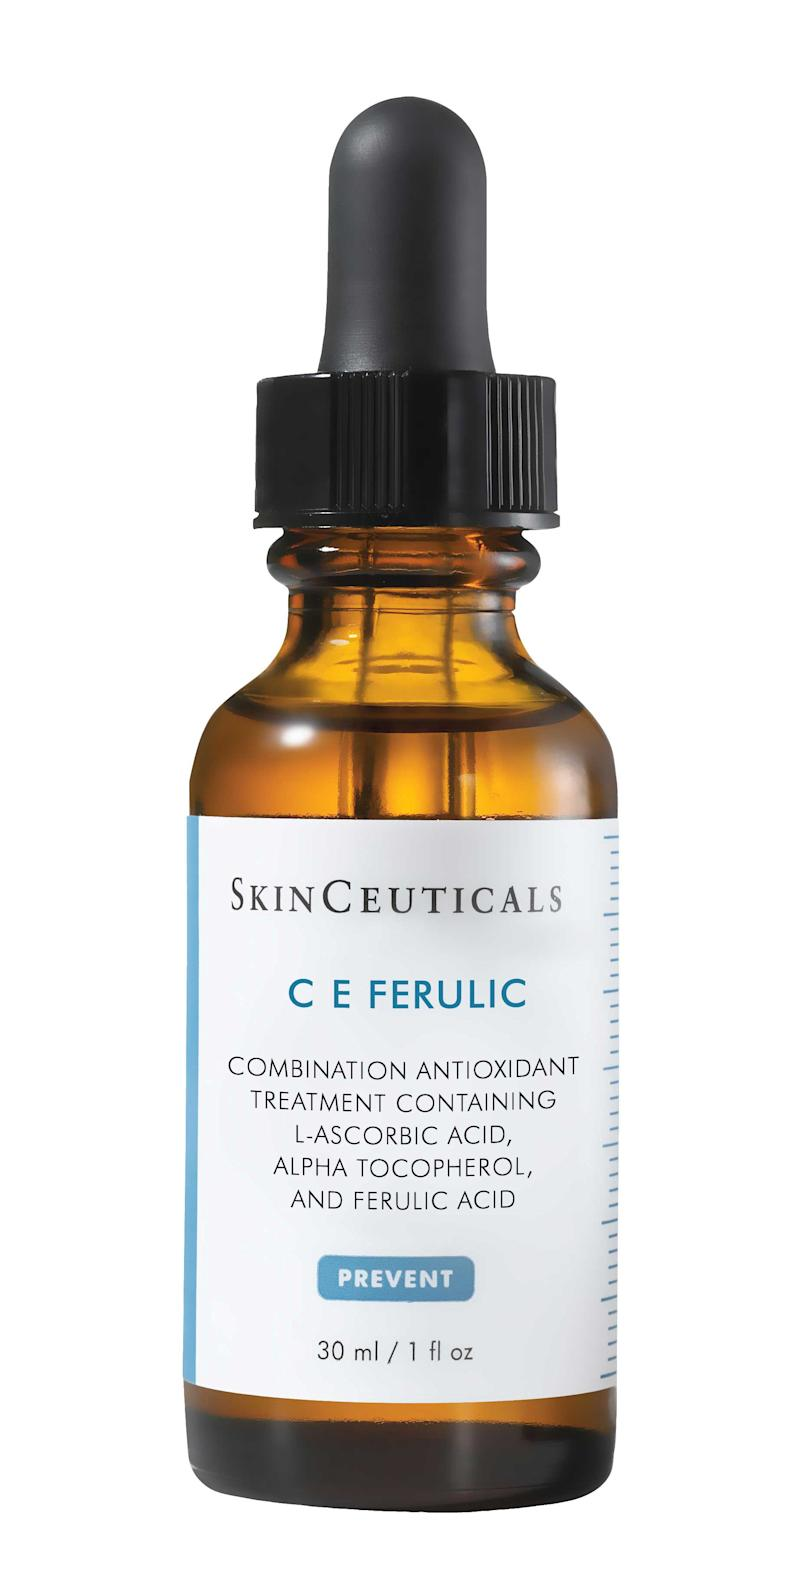 Photo credit: Courtesy of SkinCeuticals